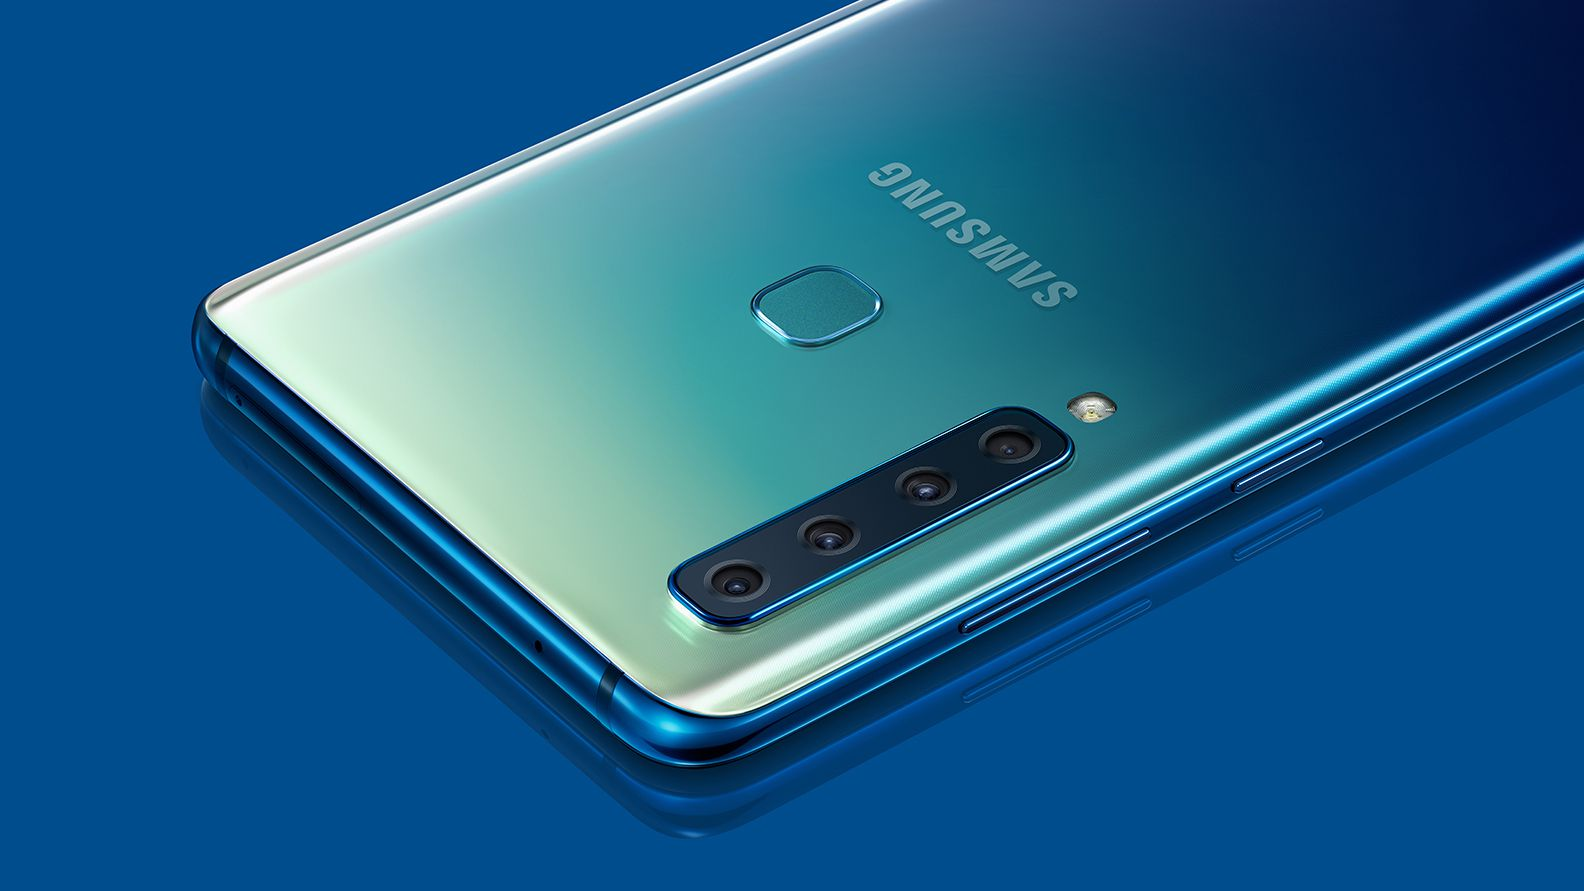 The Galaxy A10 could be the first Samsung phone with an in